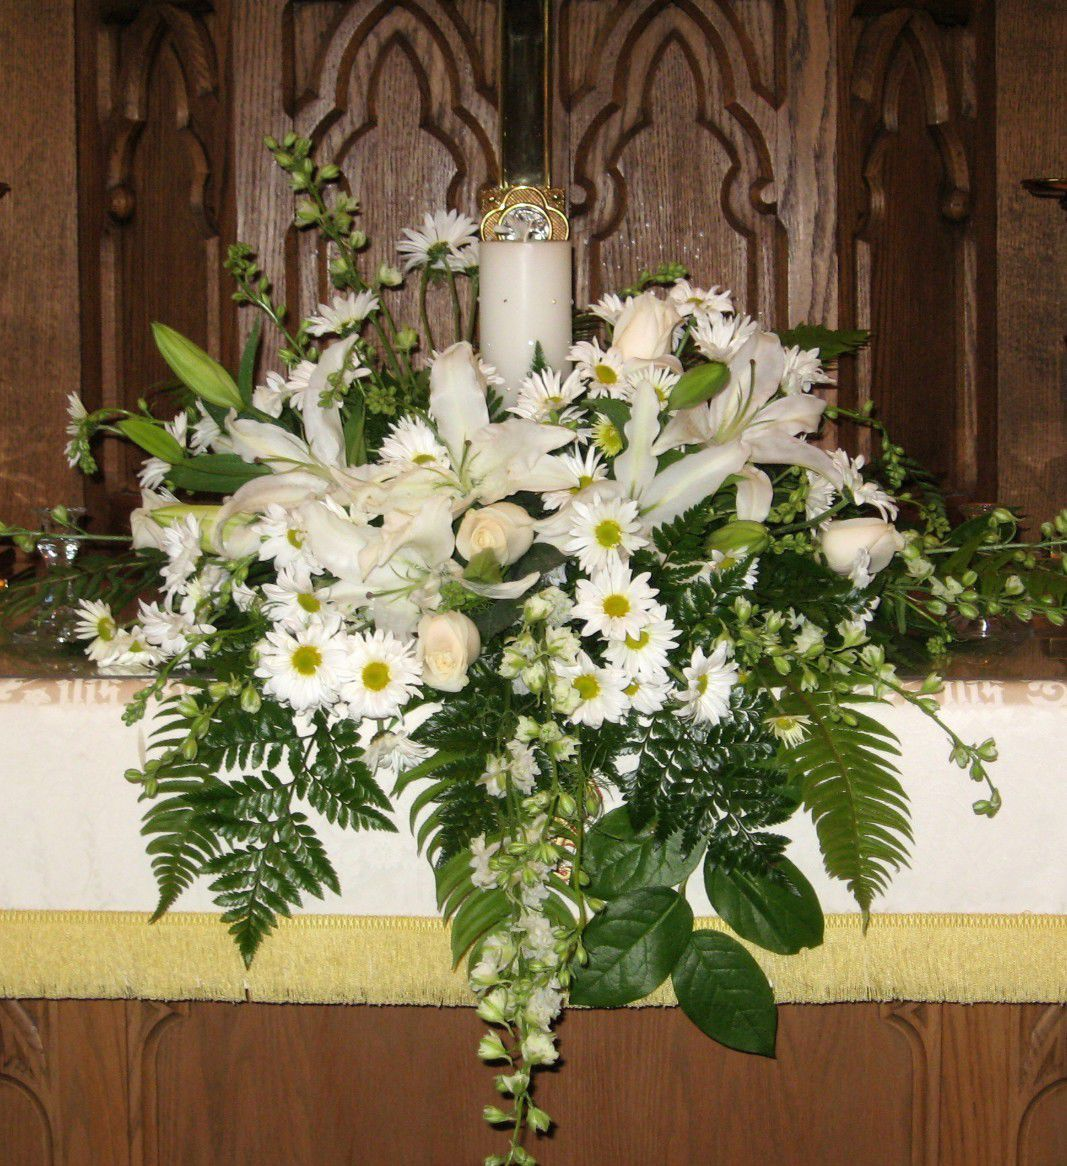 Wedding Altar Flowers Photo: Unity Candle Altar Arrangement